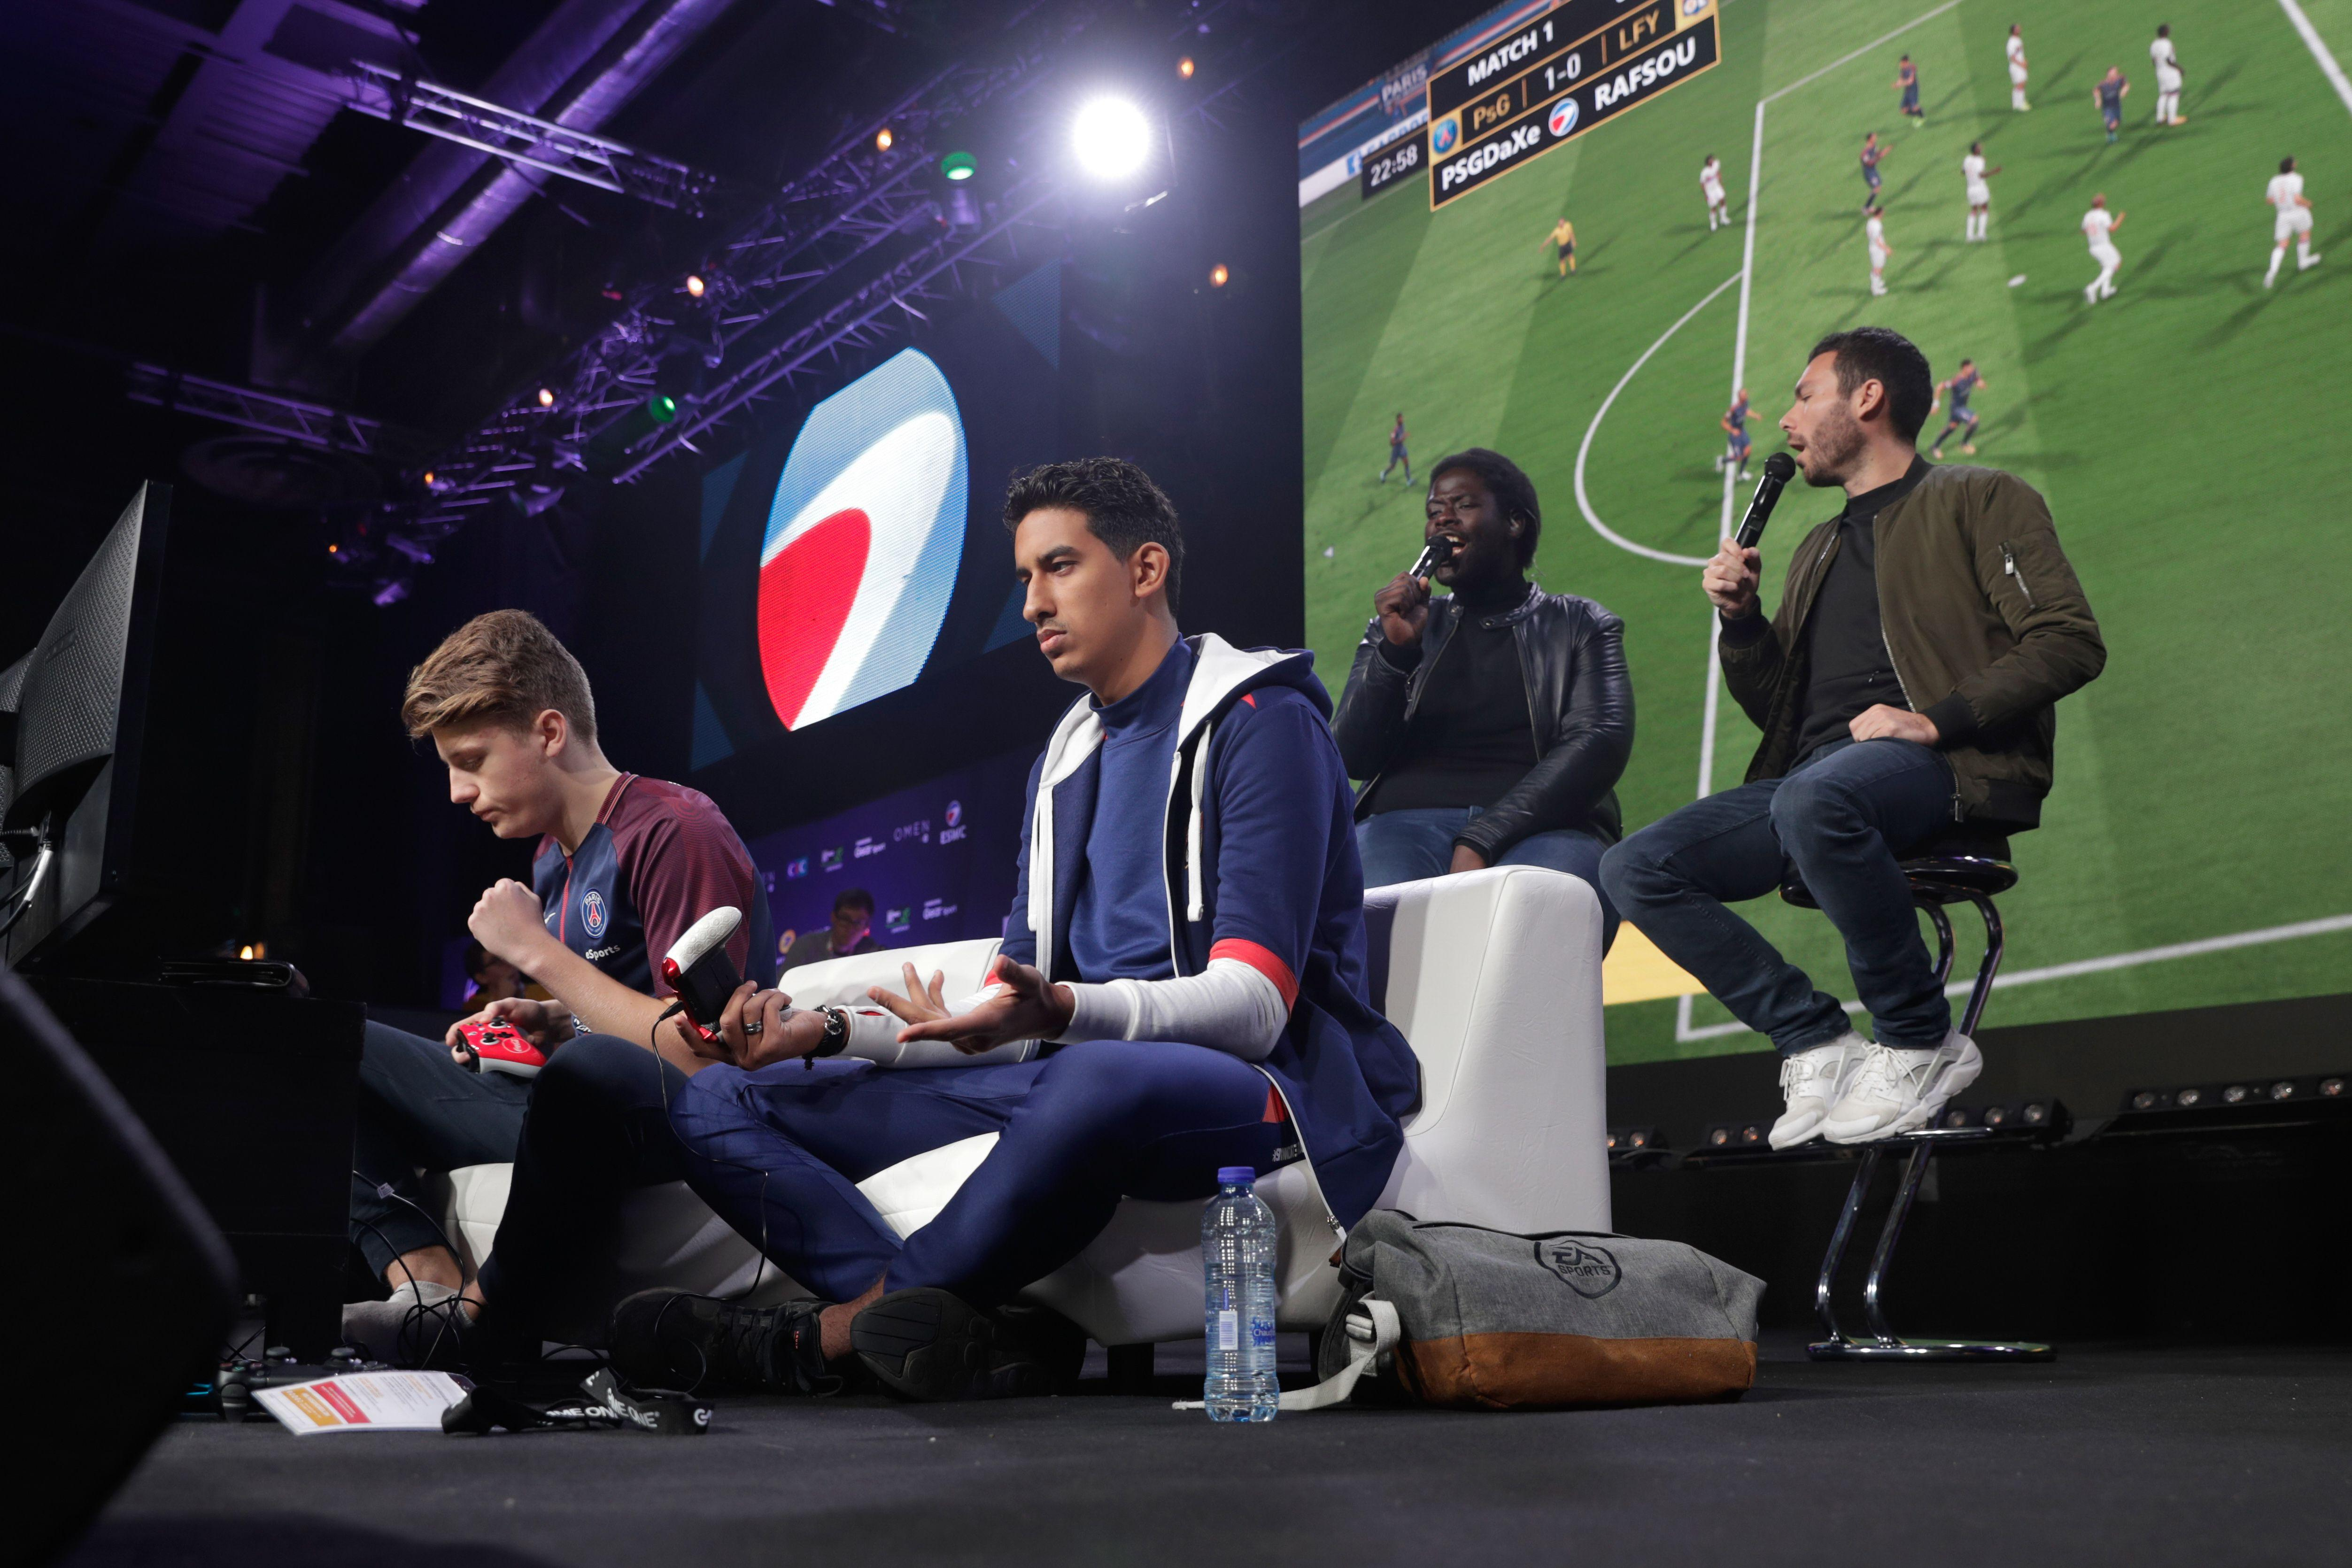 ESports is rapidly growing in popularity and with young people is almost on a par with football